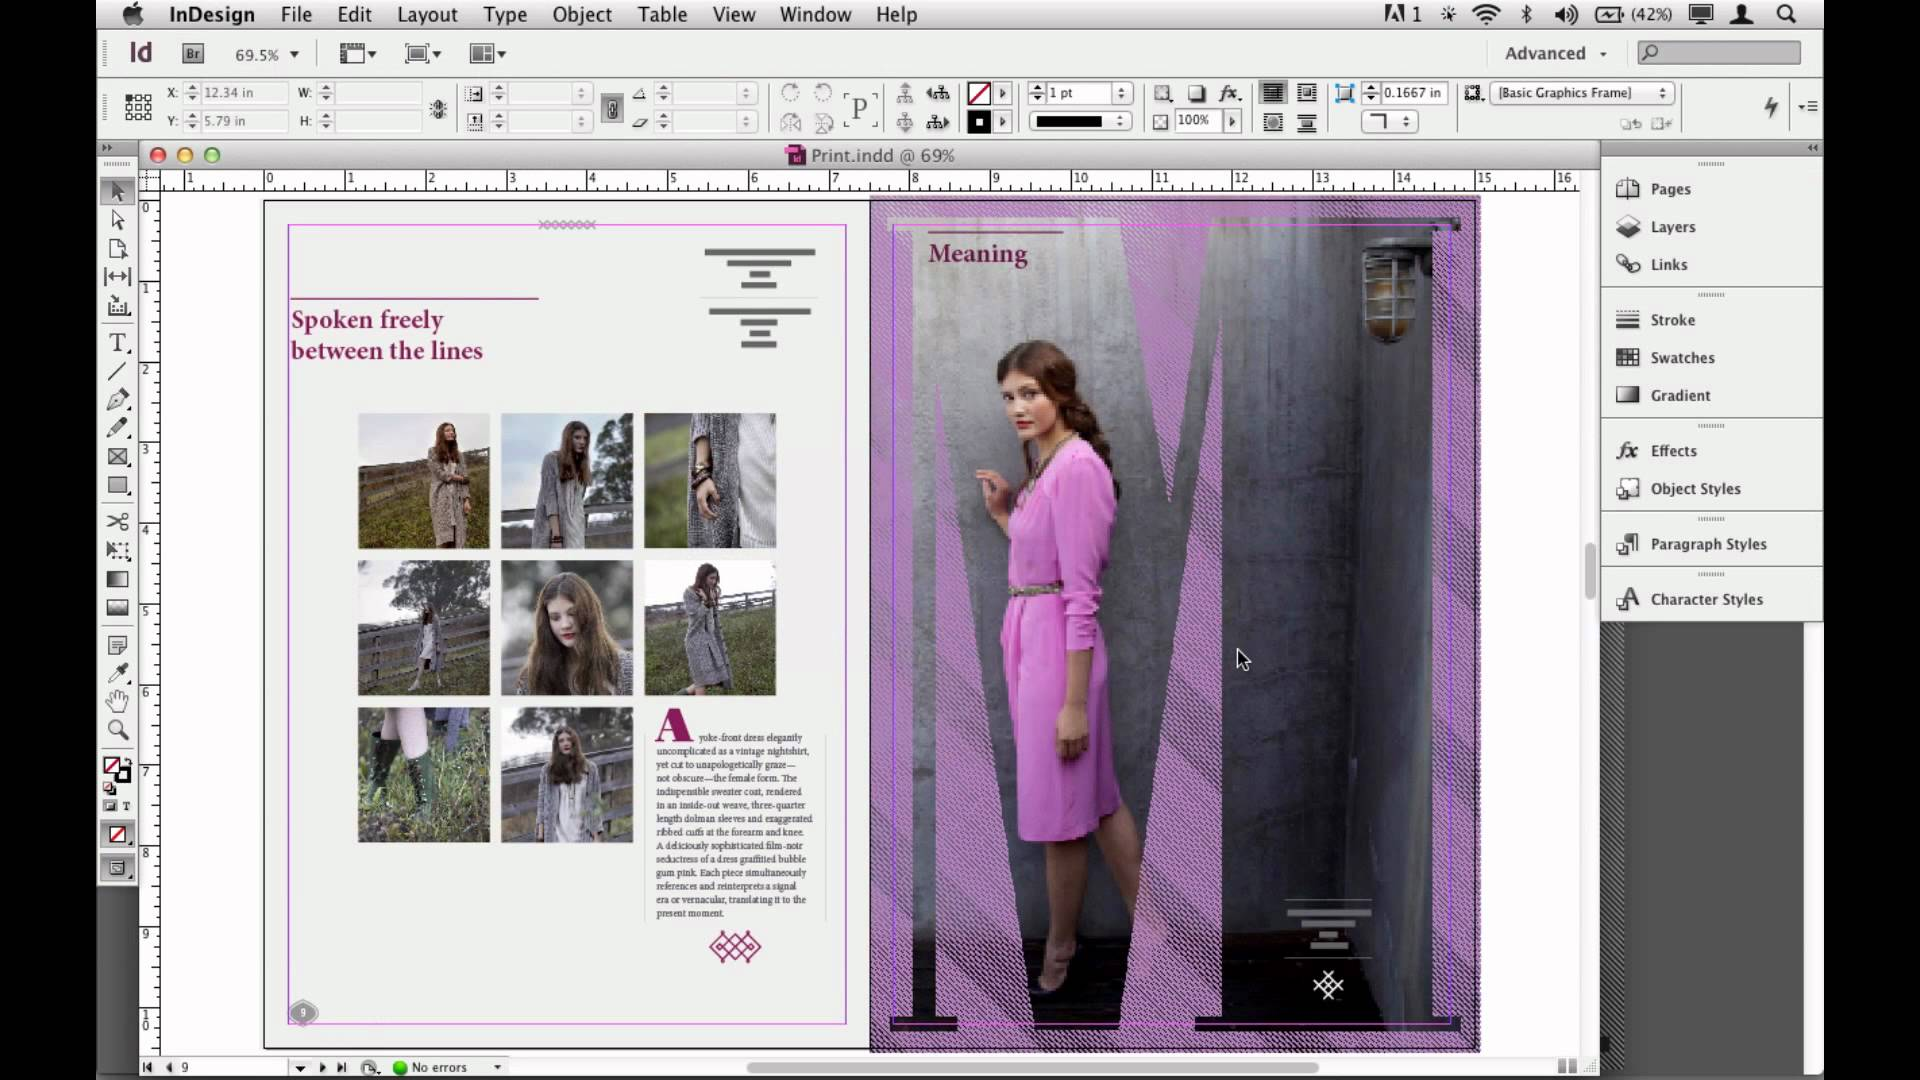 Adobe InDesign CS6 magazine editing